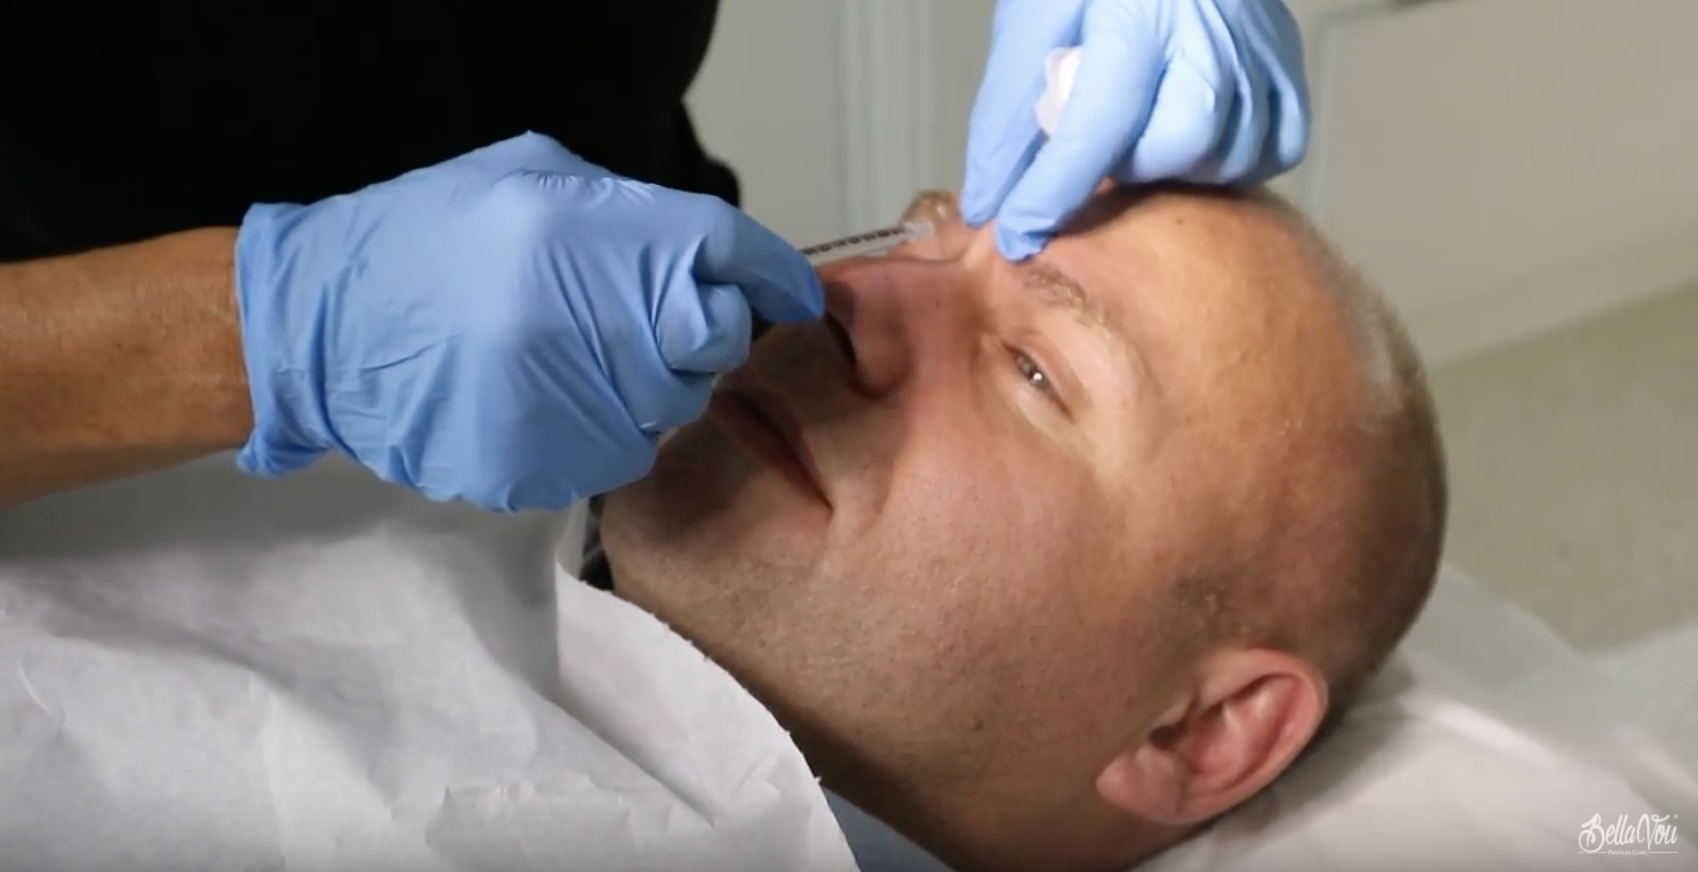 Anti wrinkle injection demonstration for men